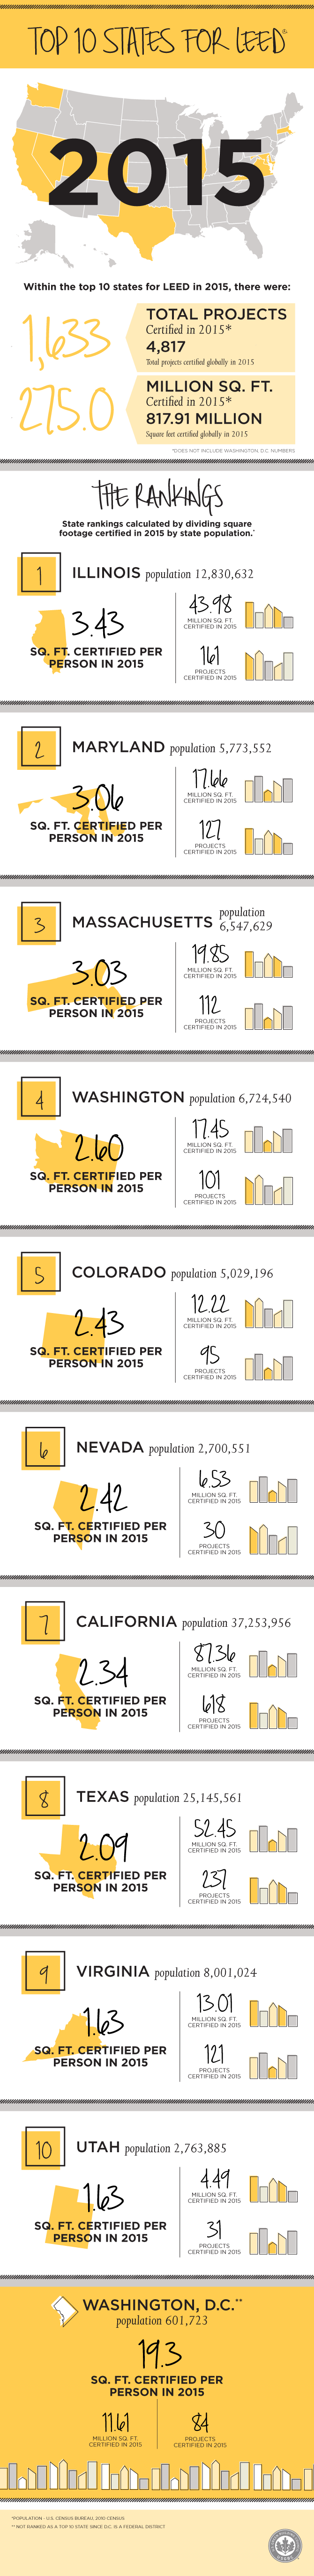 Infographic Top 10 States For Leed In 2015 Us Green Building